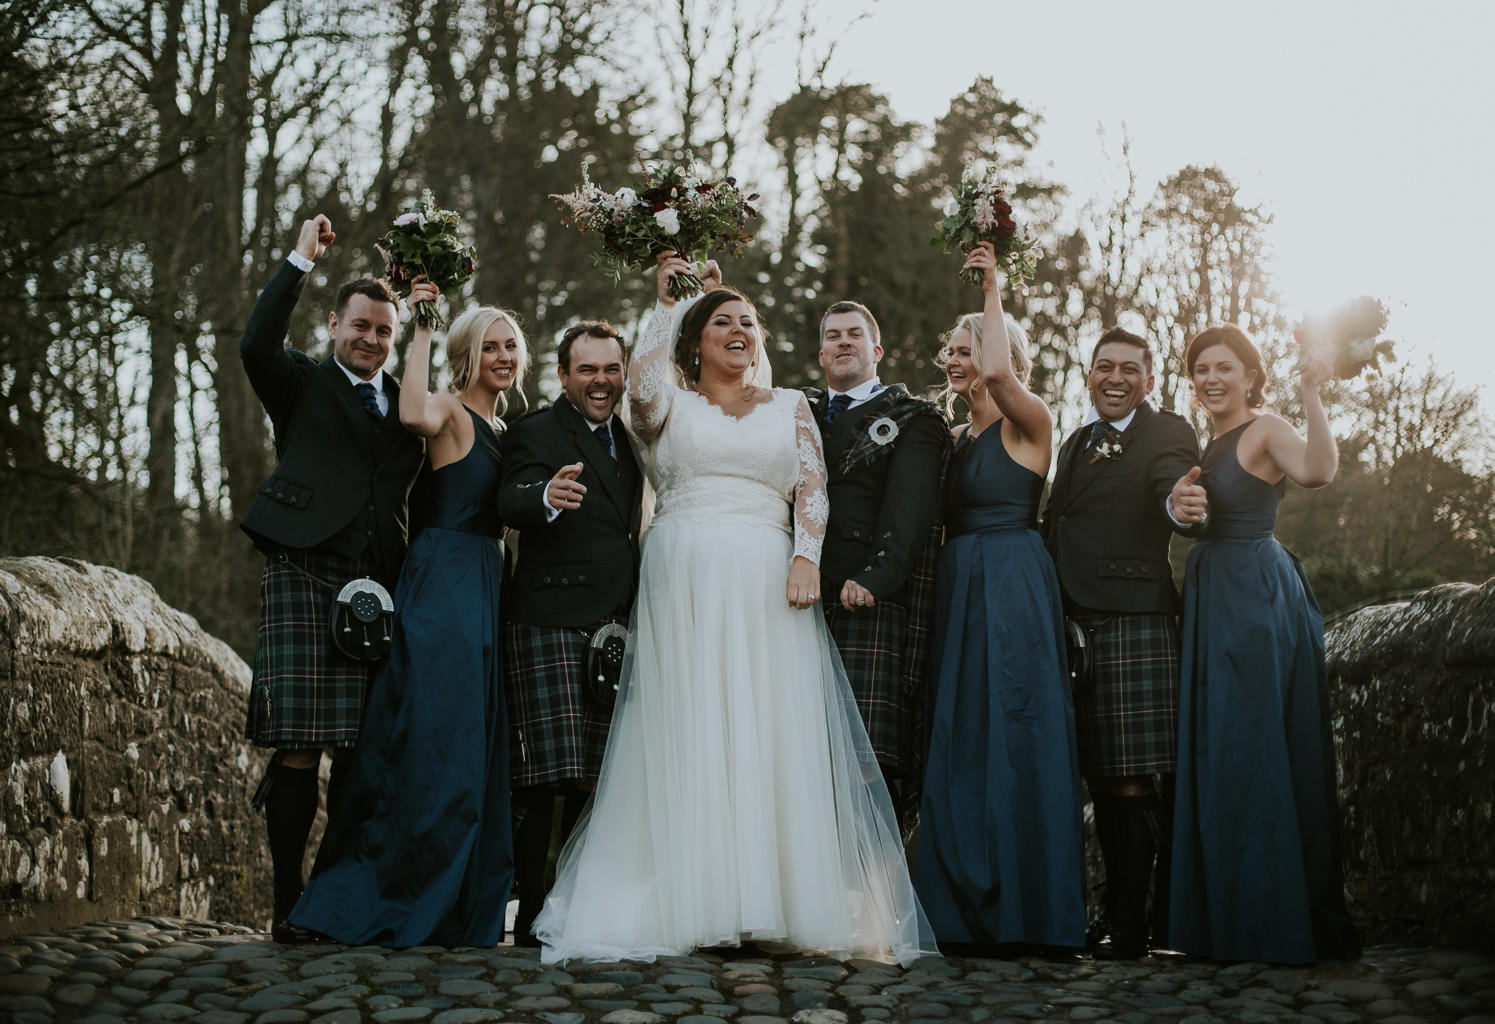 Bridal party at Brig o' Doon bridge